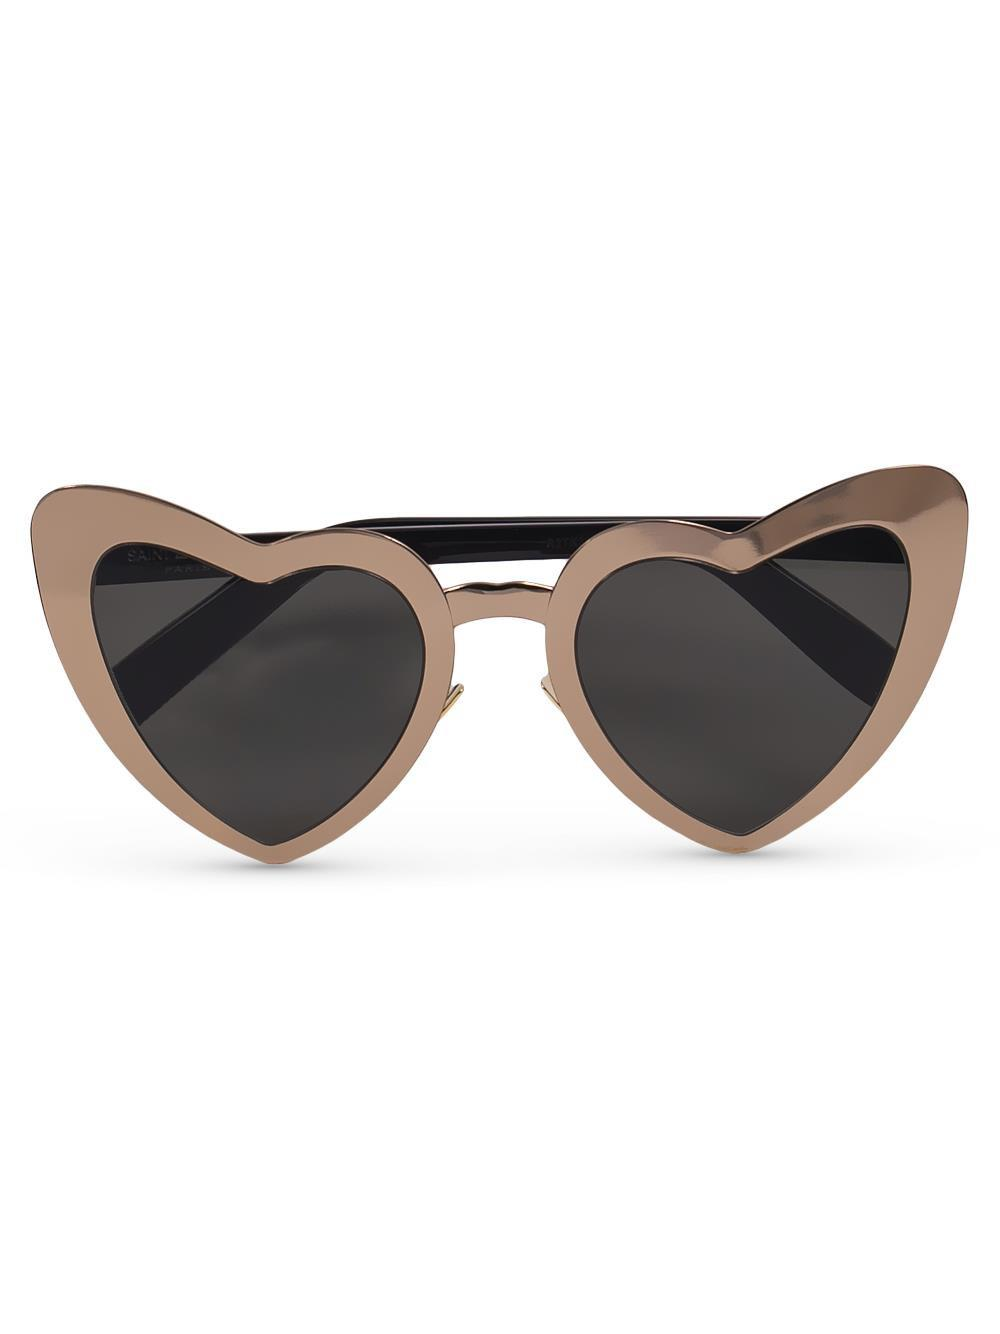 New Wave 196 LouLou sunglasses - Black Saint Laurent Eyewear N1hxe